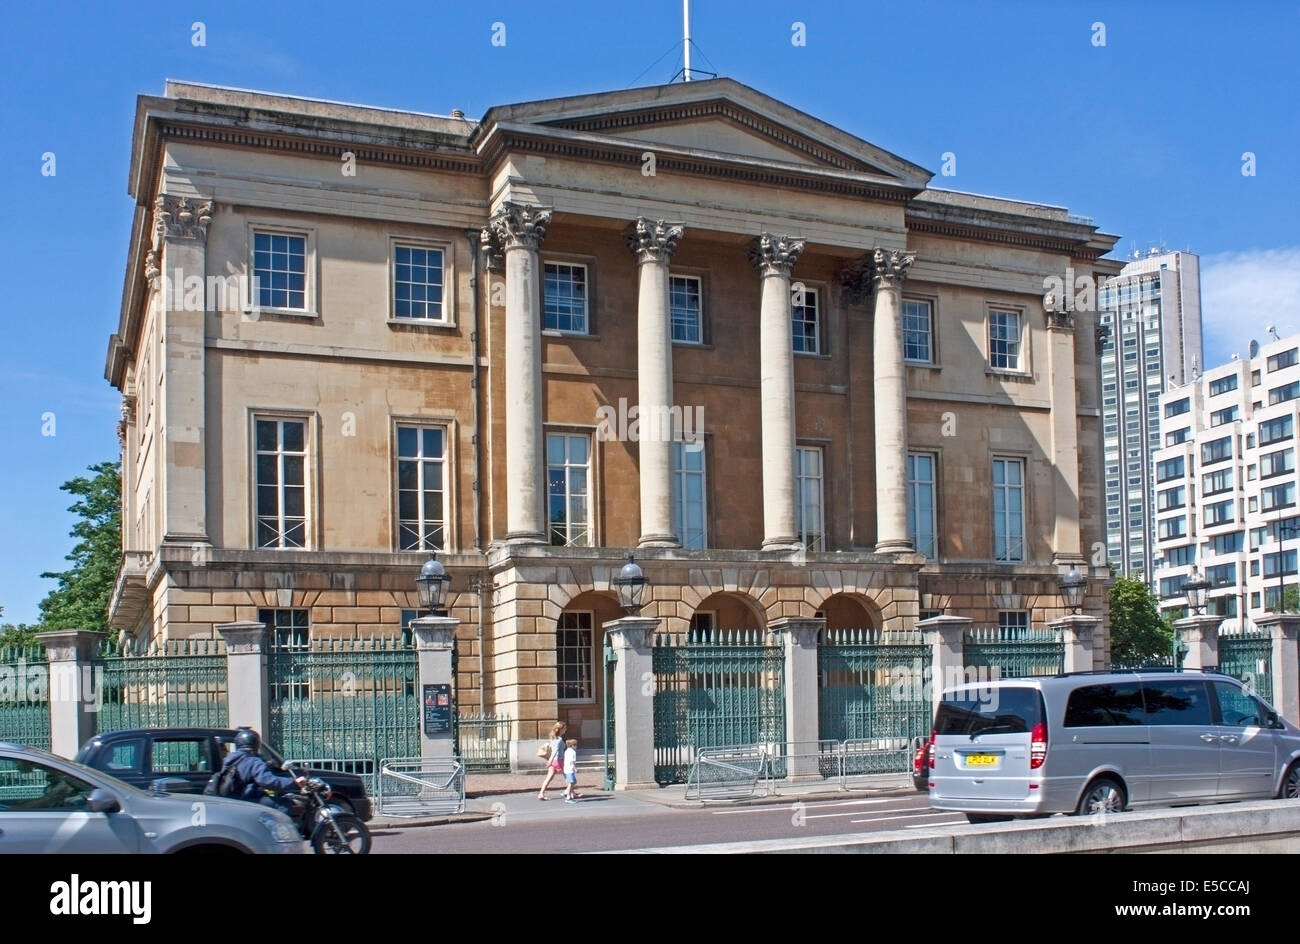 Apsley House, the London home of the Duke of Wellington, also known as Number One London, at Hyde Park Corner. - Stock Image